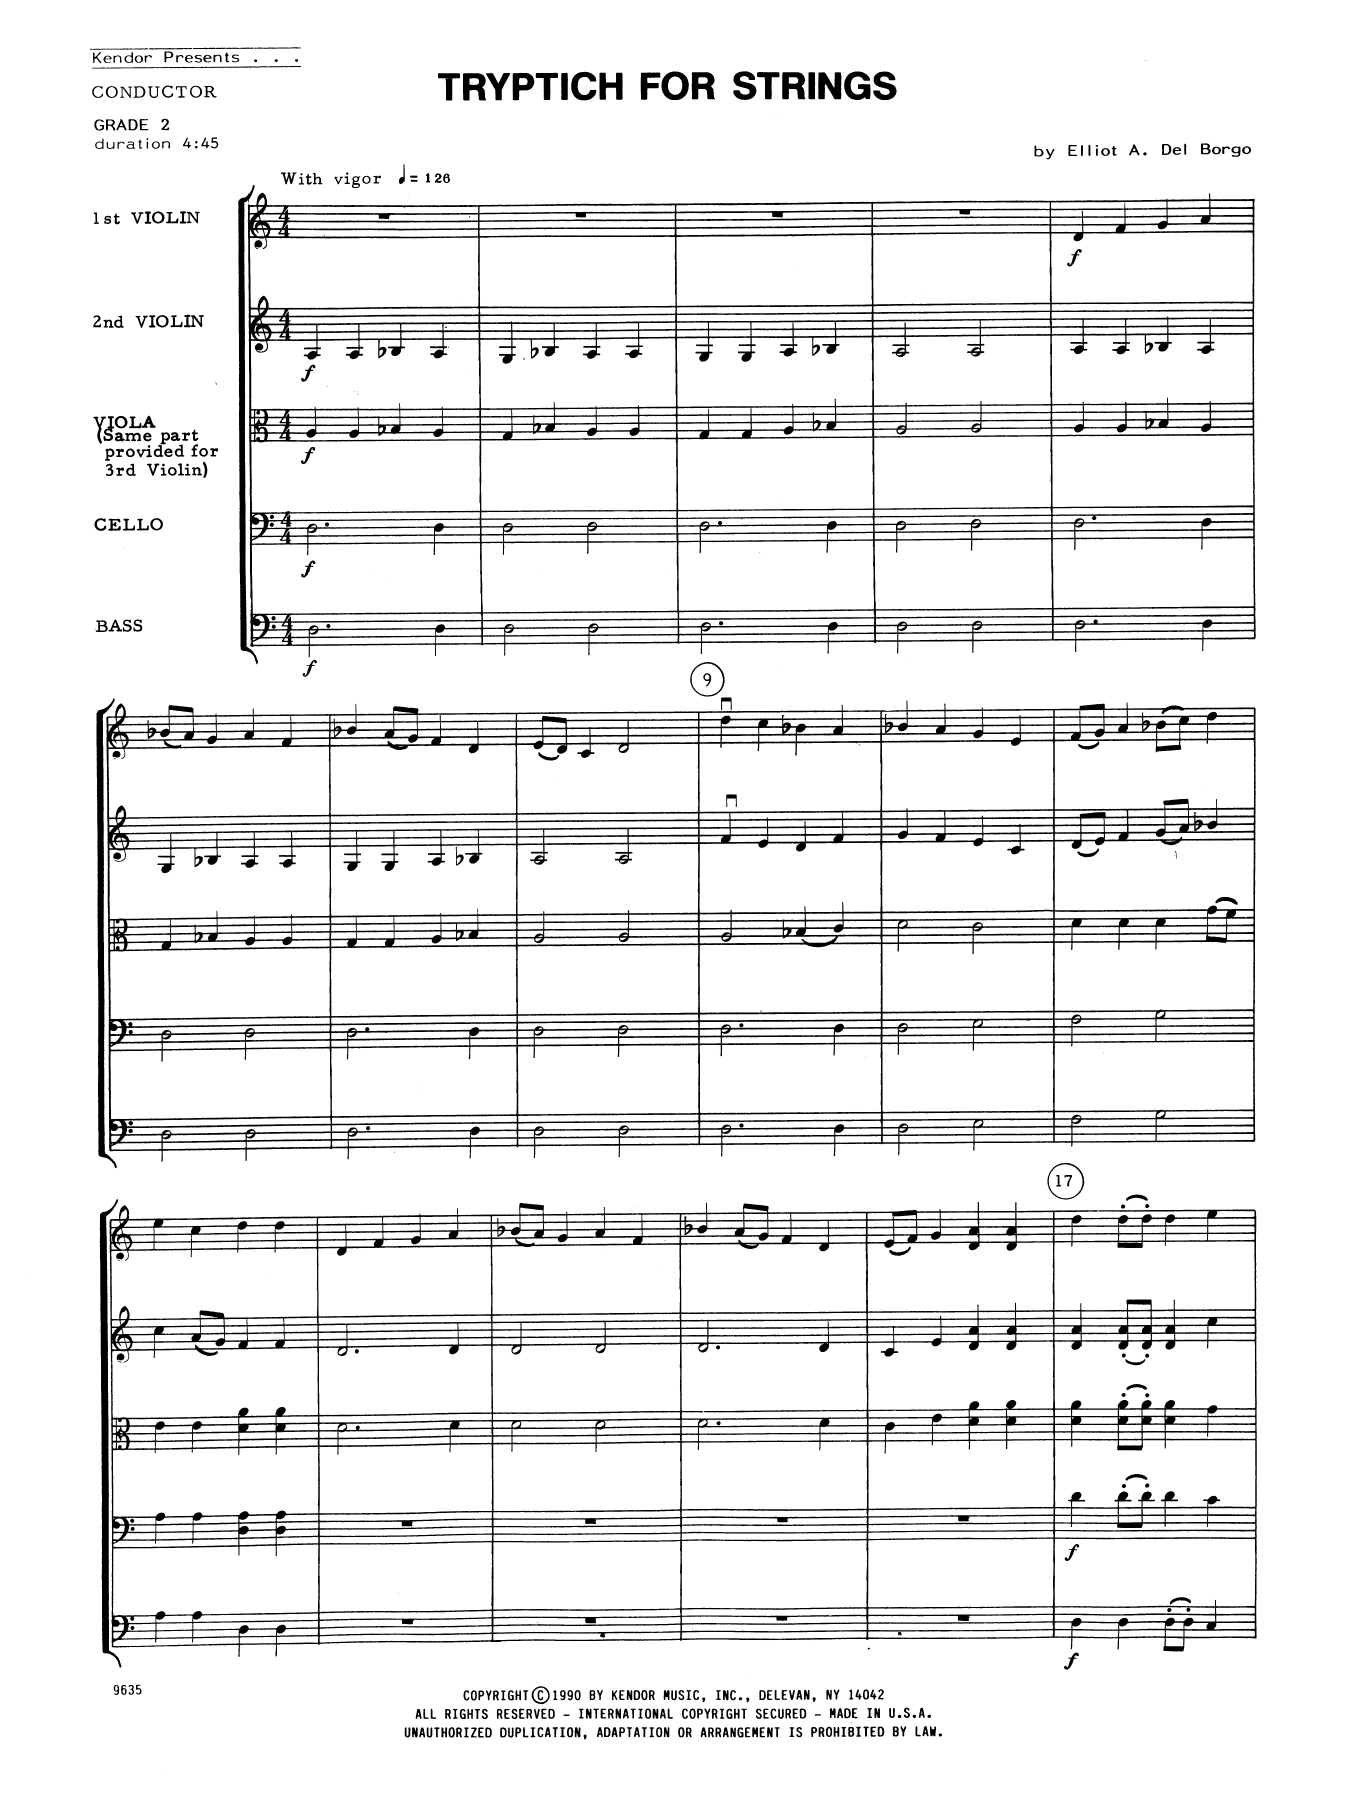 Elliot A. Del Borgo Tryptich For Strings - Full Score sheet music notes and chords. Download Printable PDF.